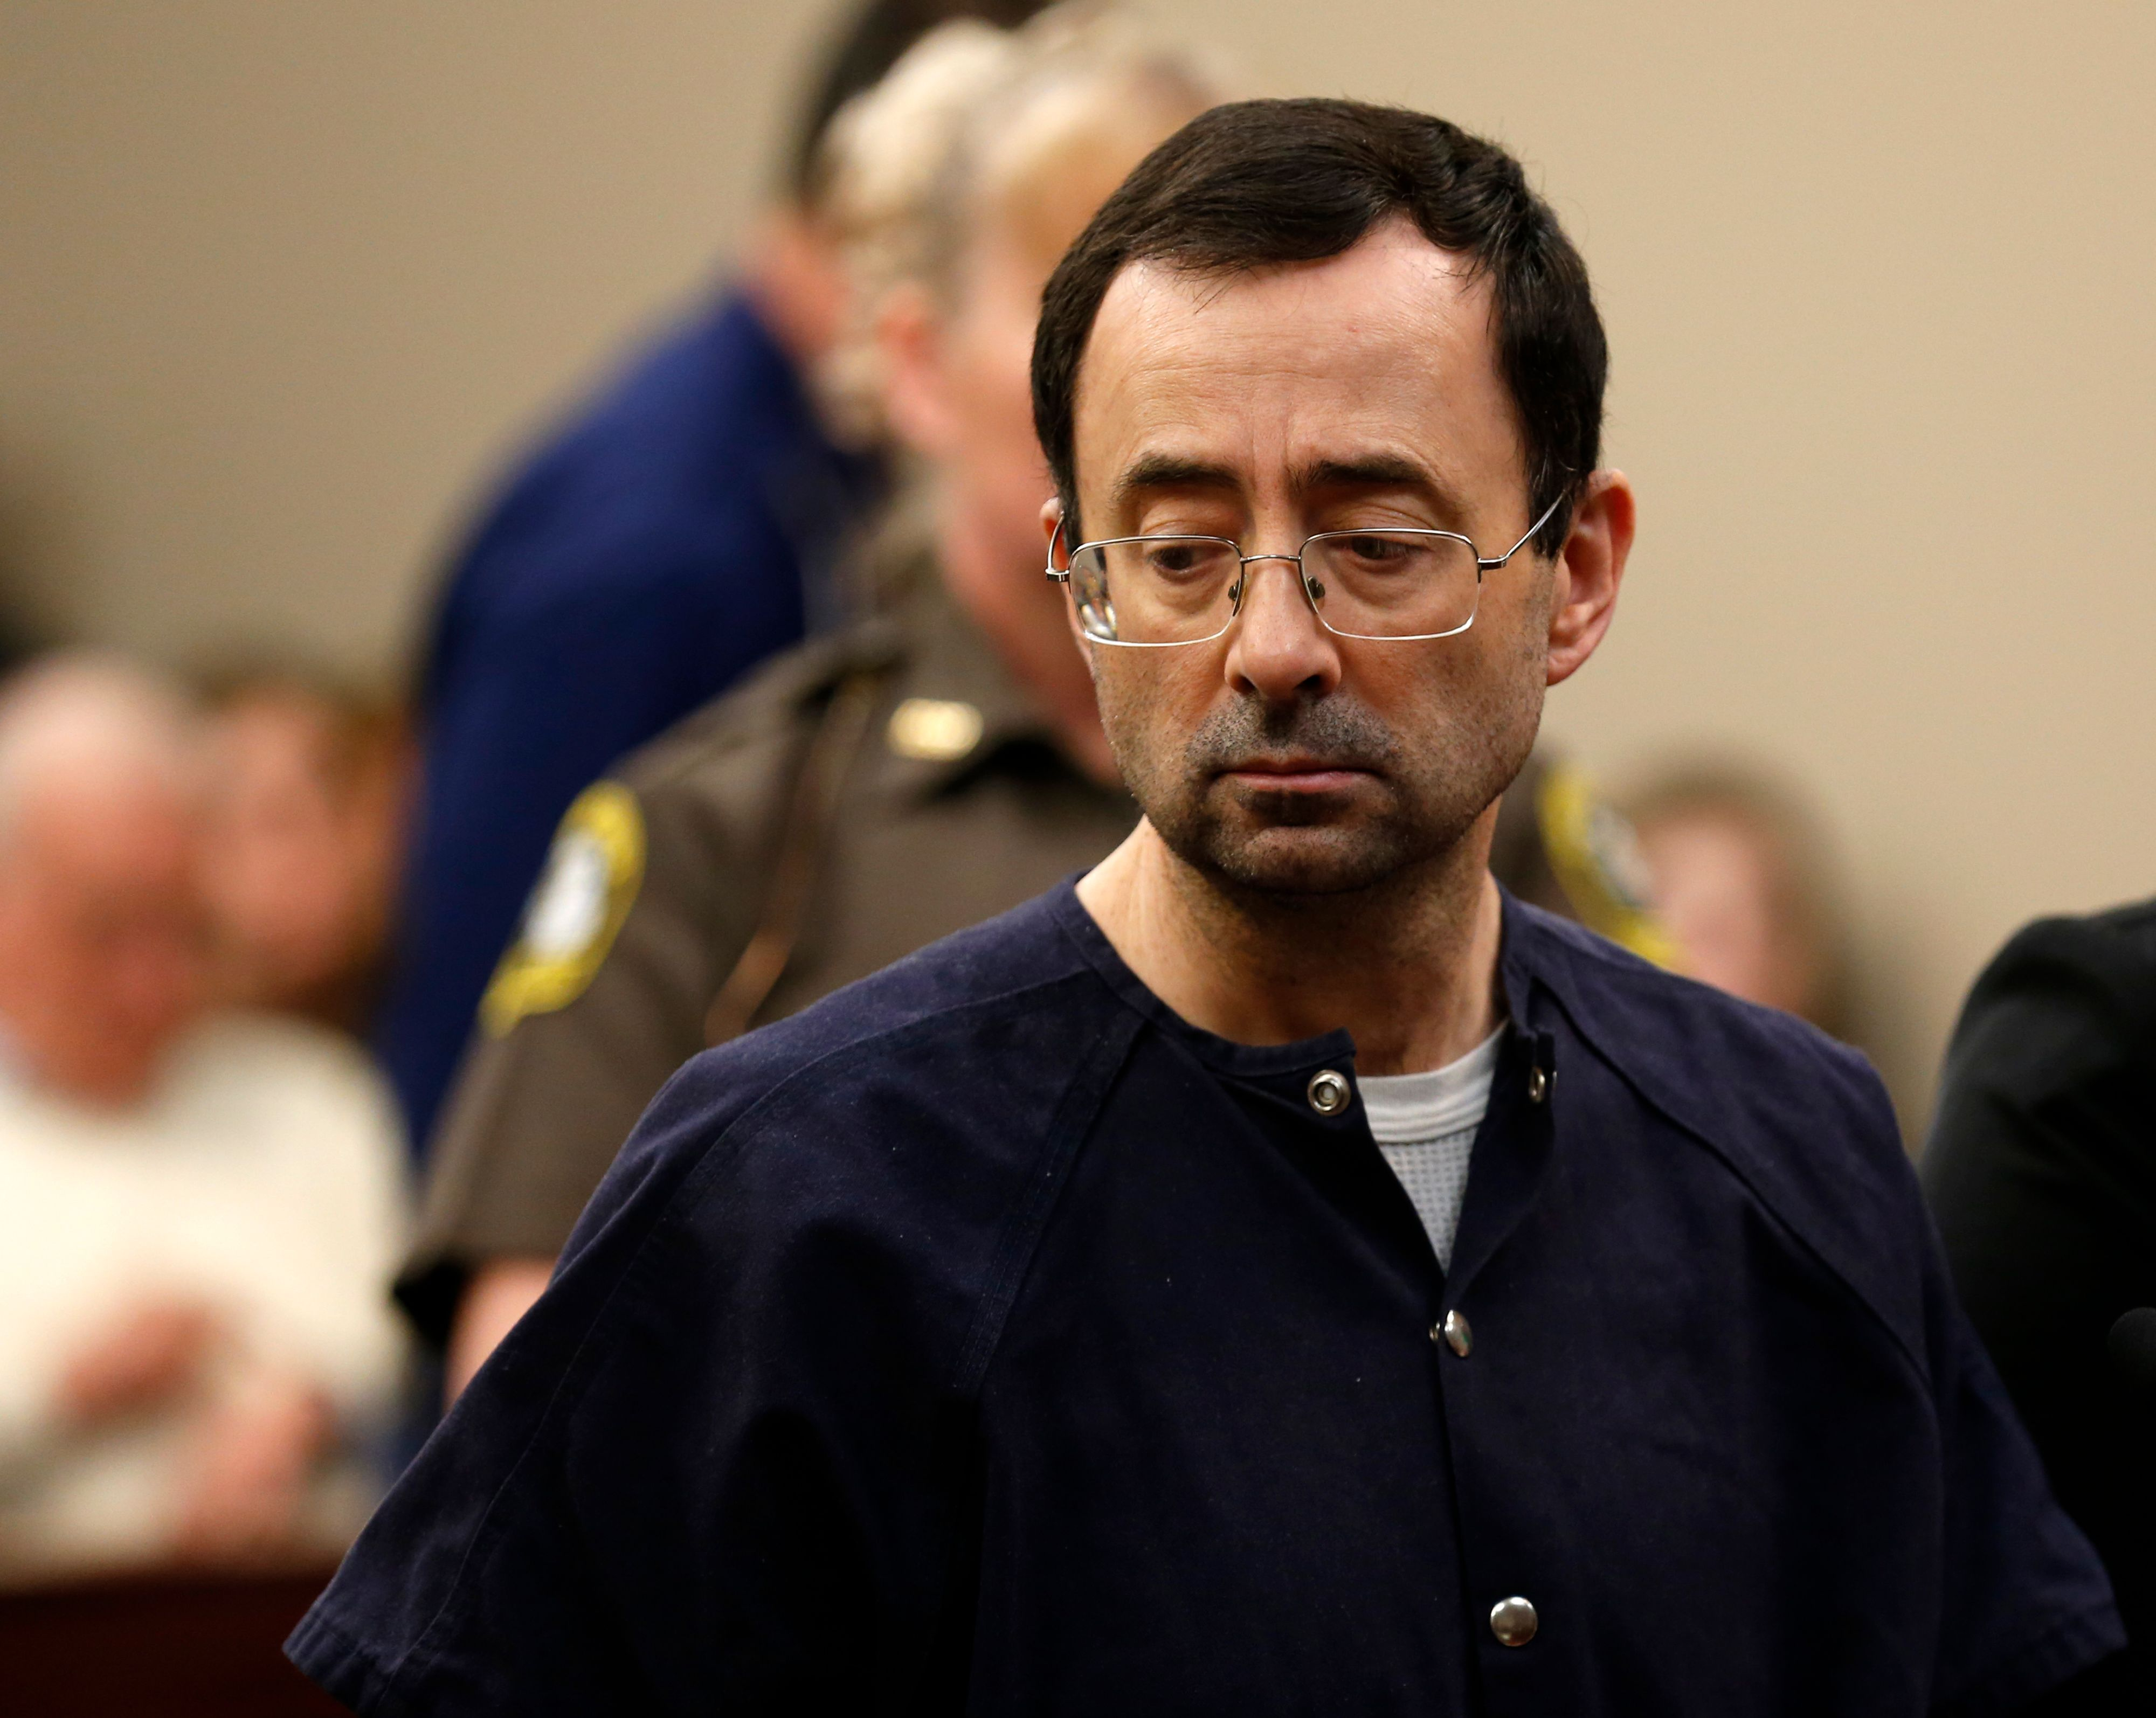 Meeting Larry Nassar: The Appointment that Changed Everything